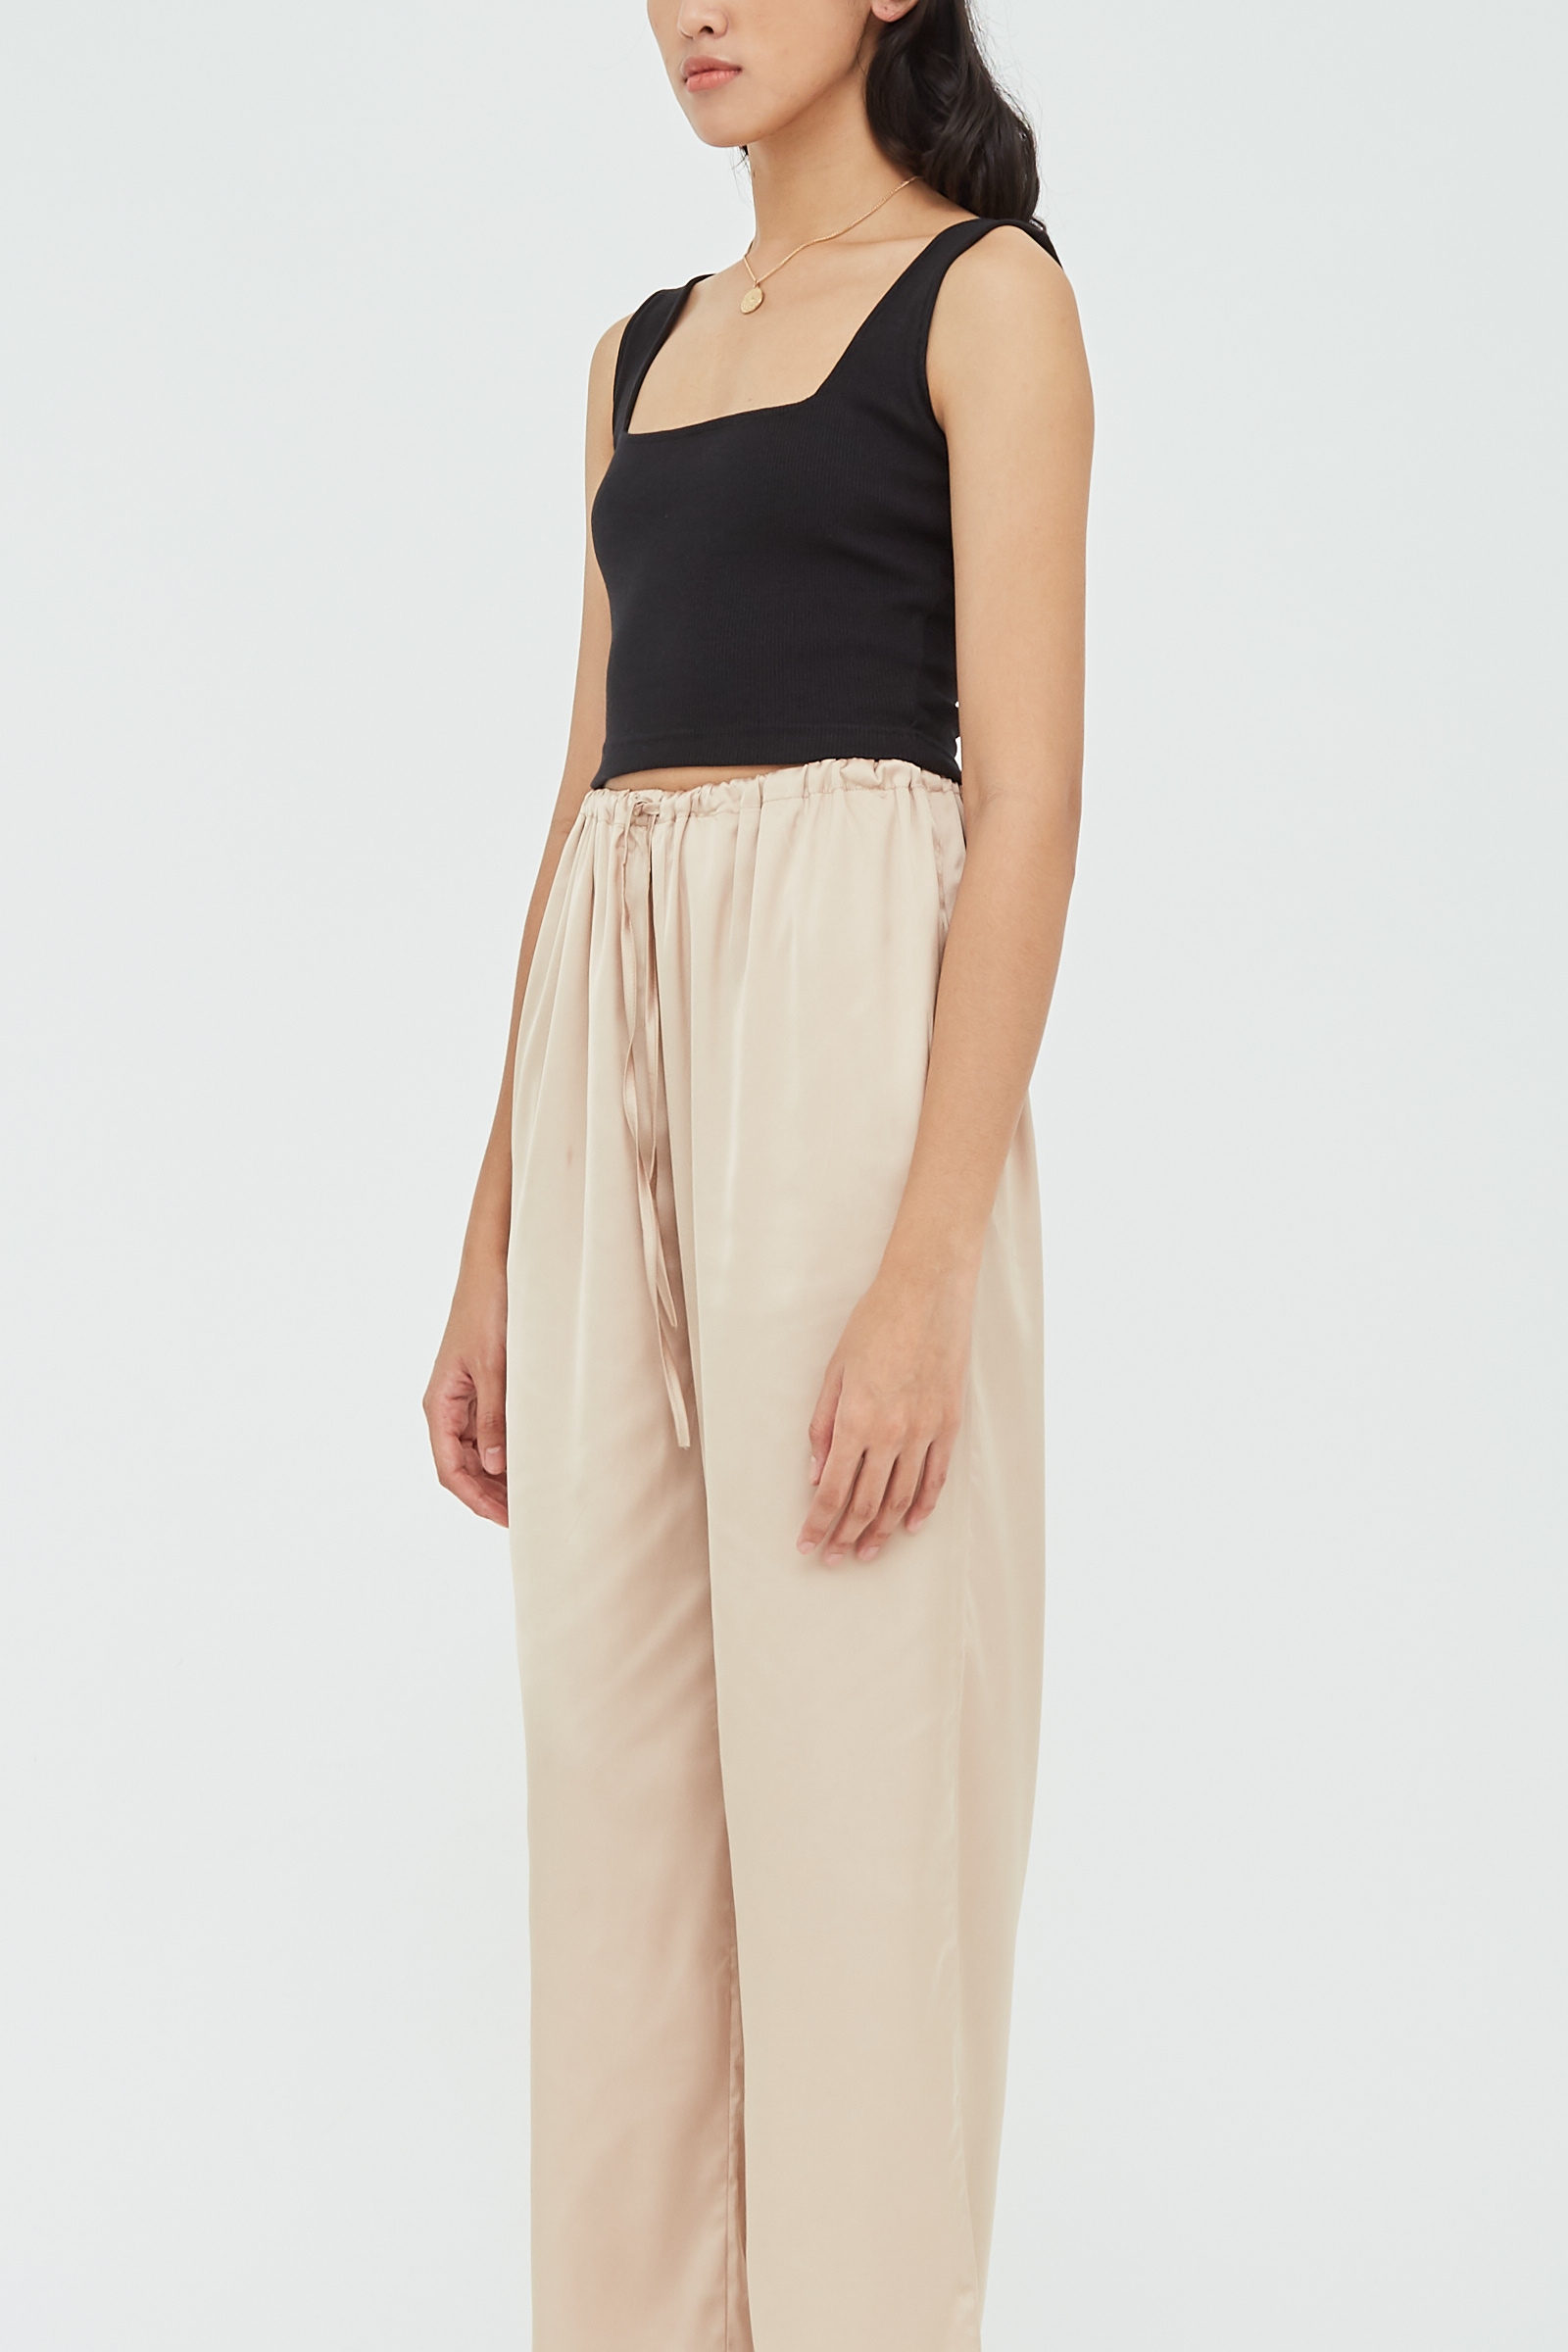 Shopatvelvet Sateen Lounge Pants